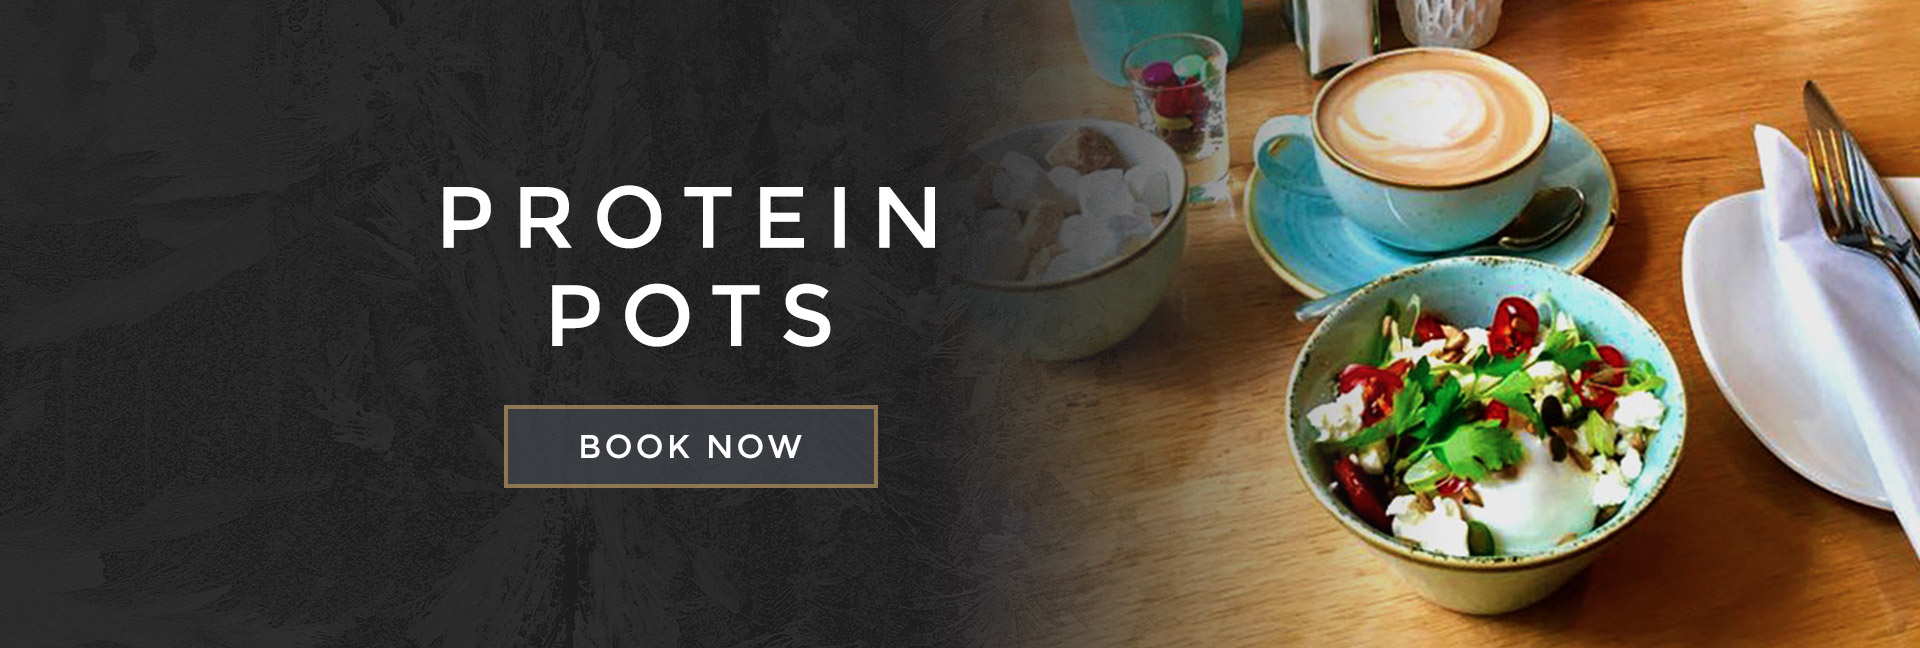 Protein pots at All Bar One Holborn - Book your table